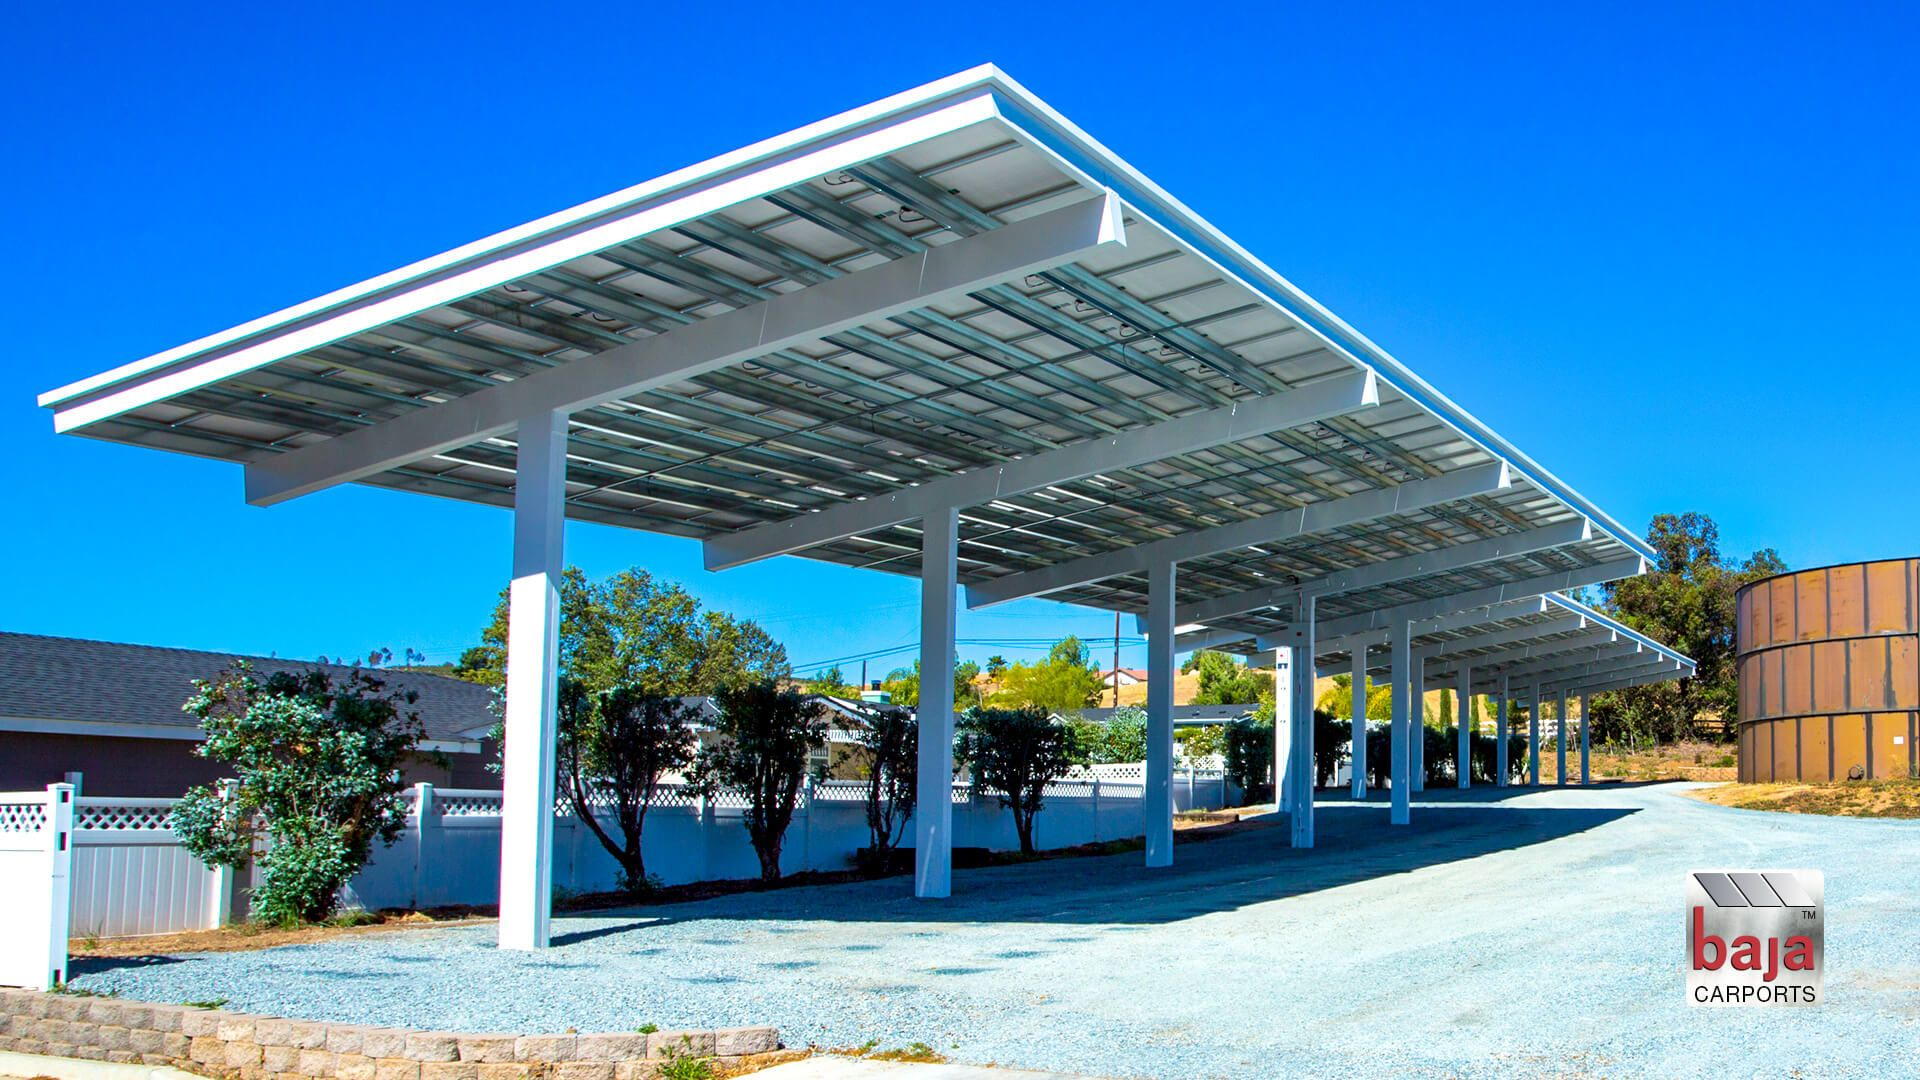 Image Result For Carports Commercial Carport Outdoor Structures Patio